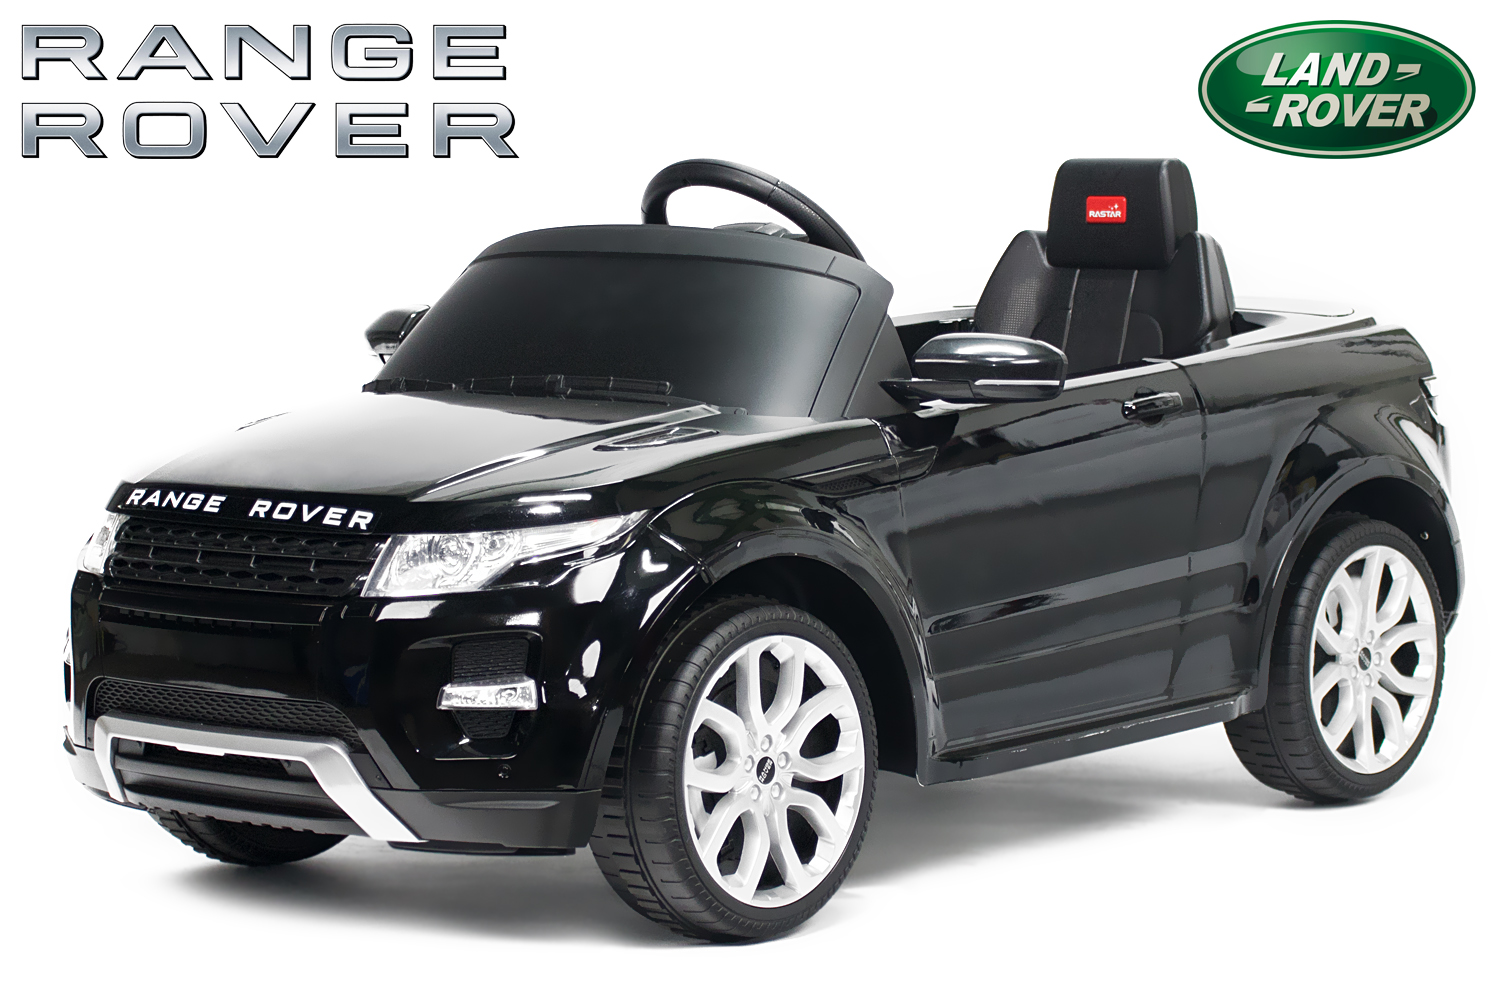 kidcars kinder elektroautos mit akku lizenz kinder elektro auto land rover evoque 2x 25w 12v. Black Bedroom Furniture Sets. Home Design Ideas